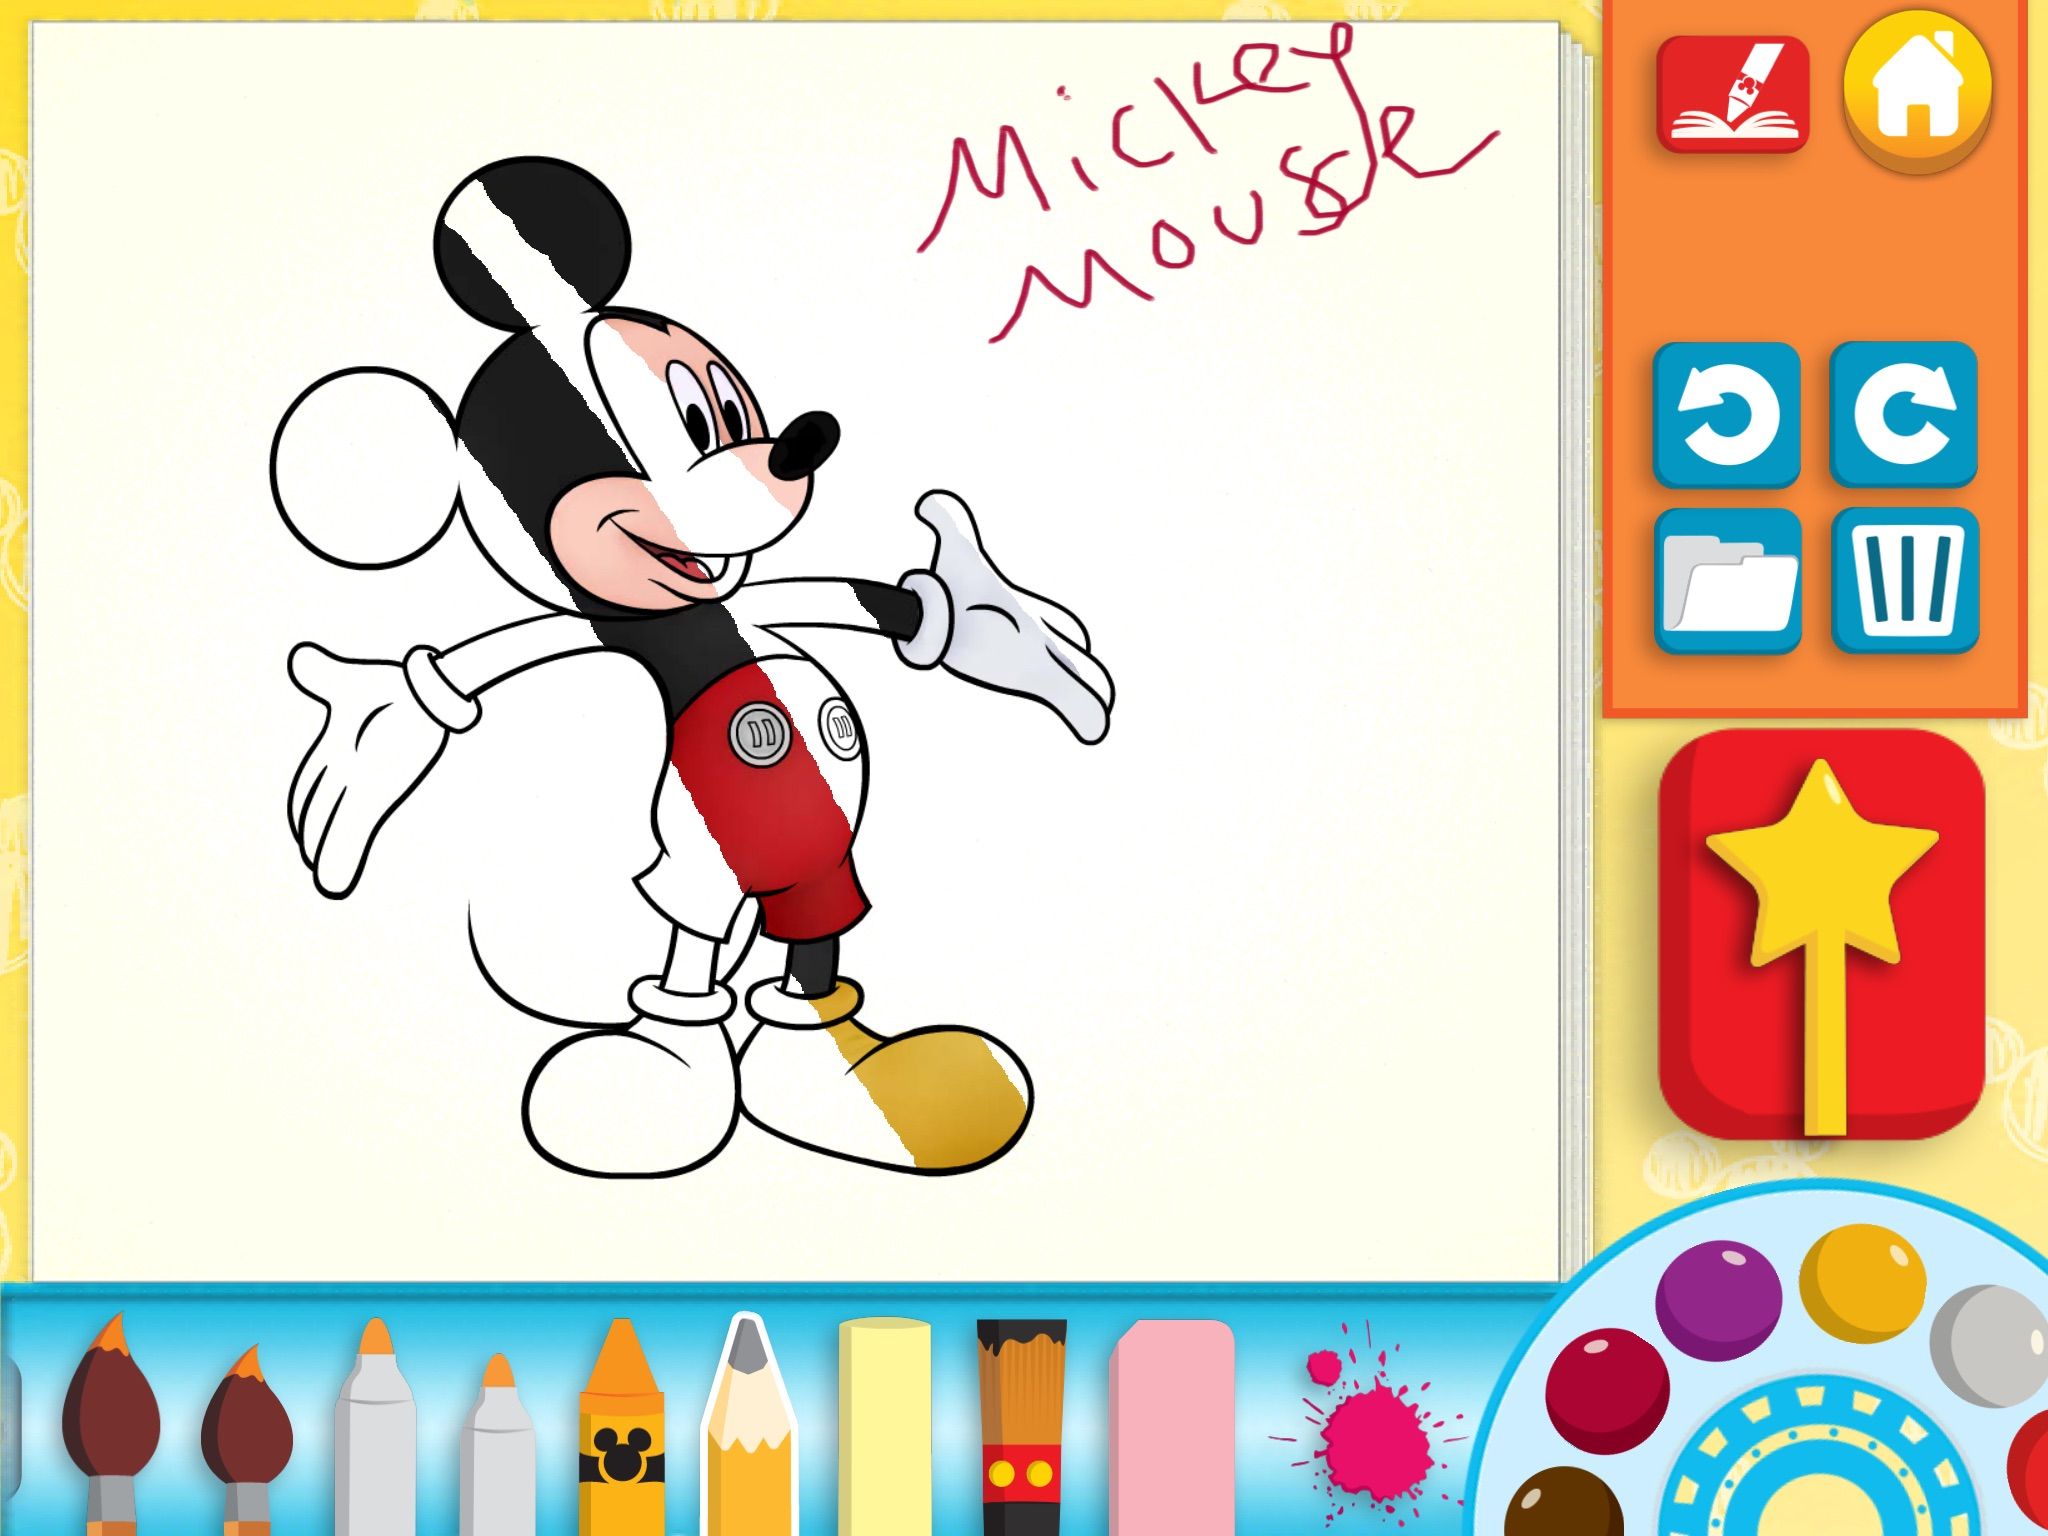 Coloring pages app - 3